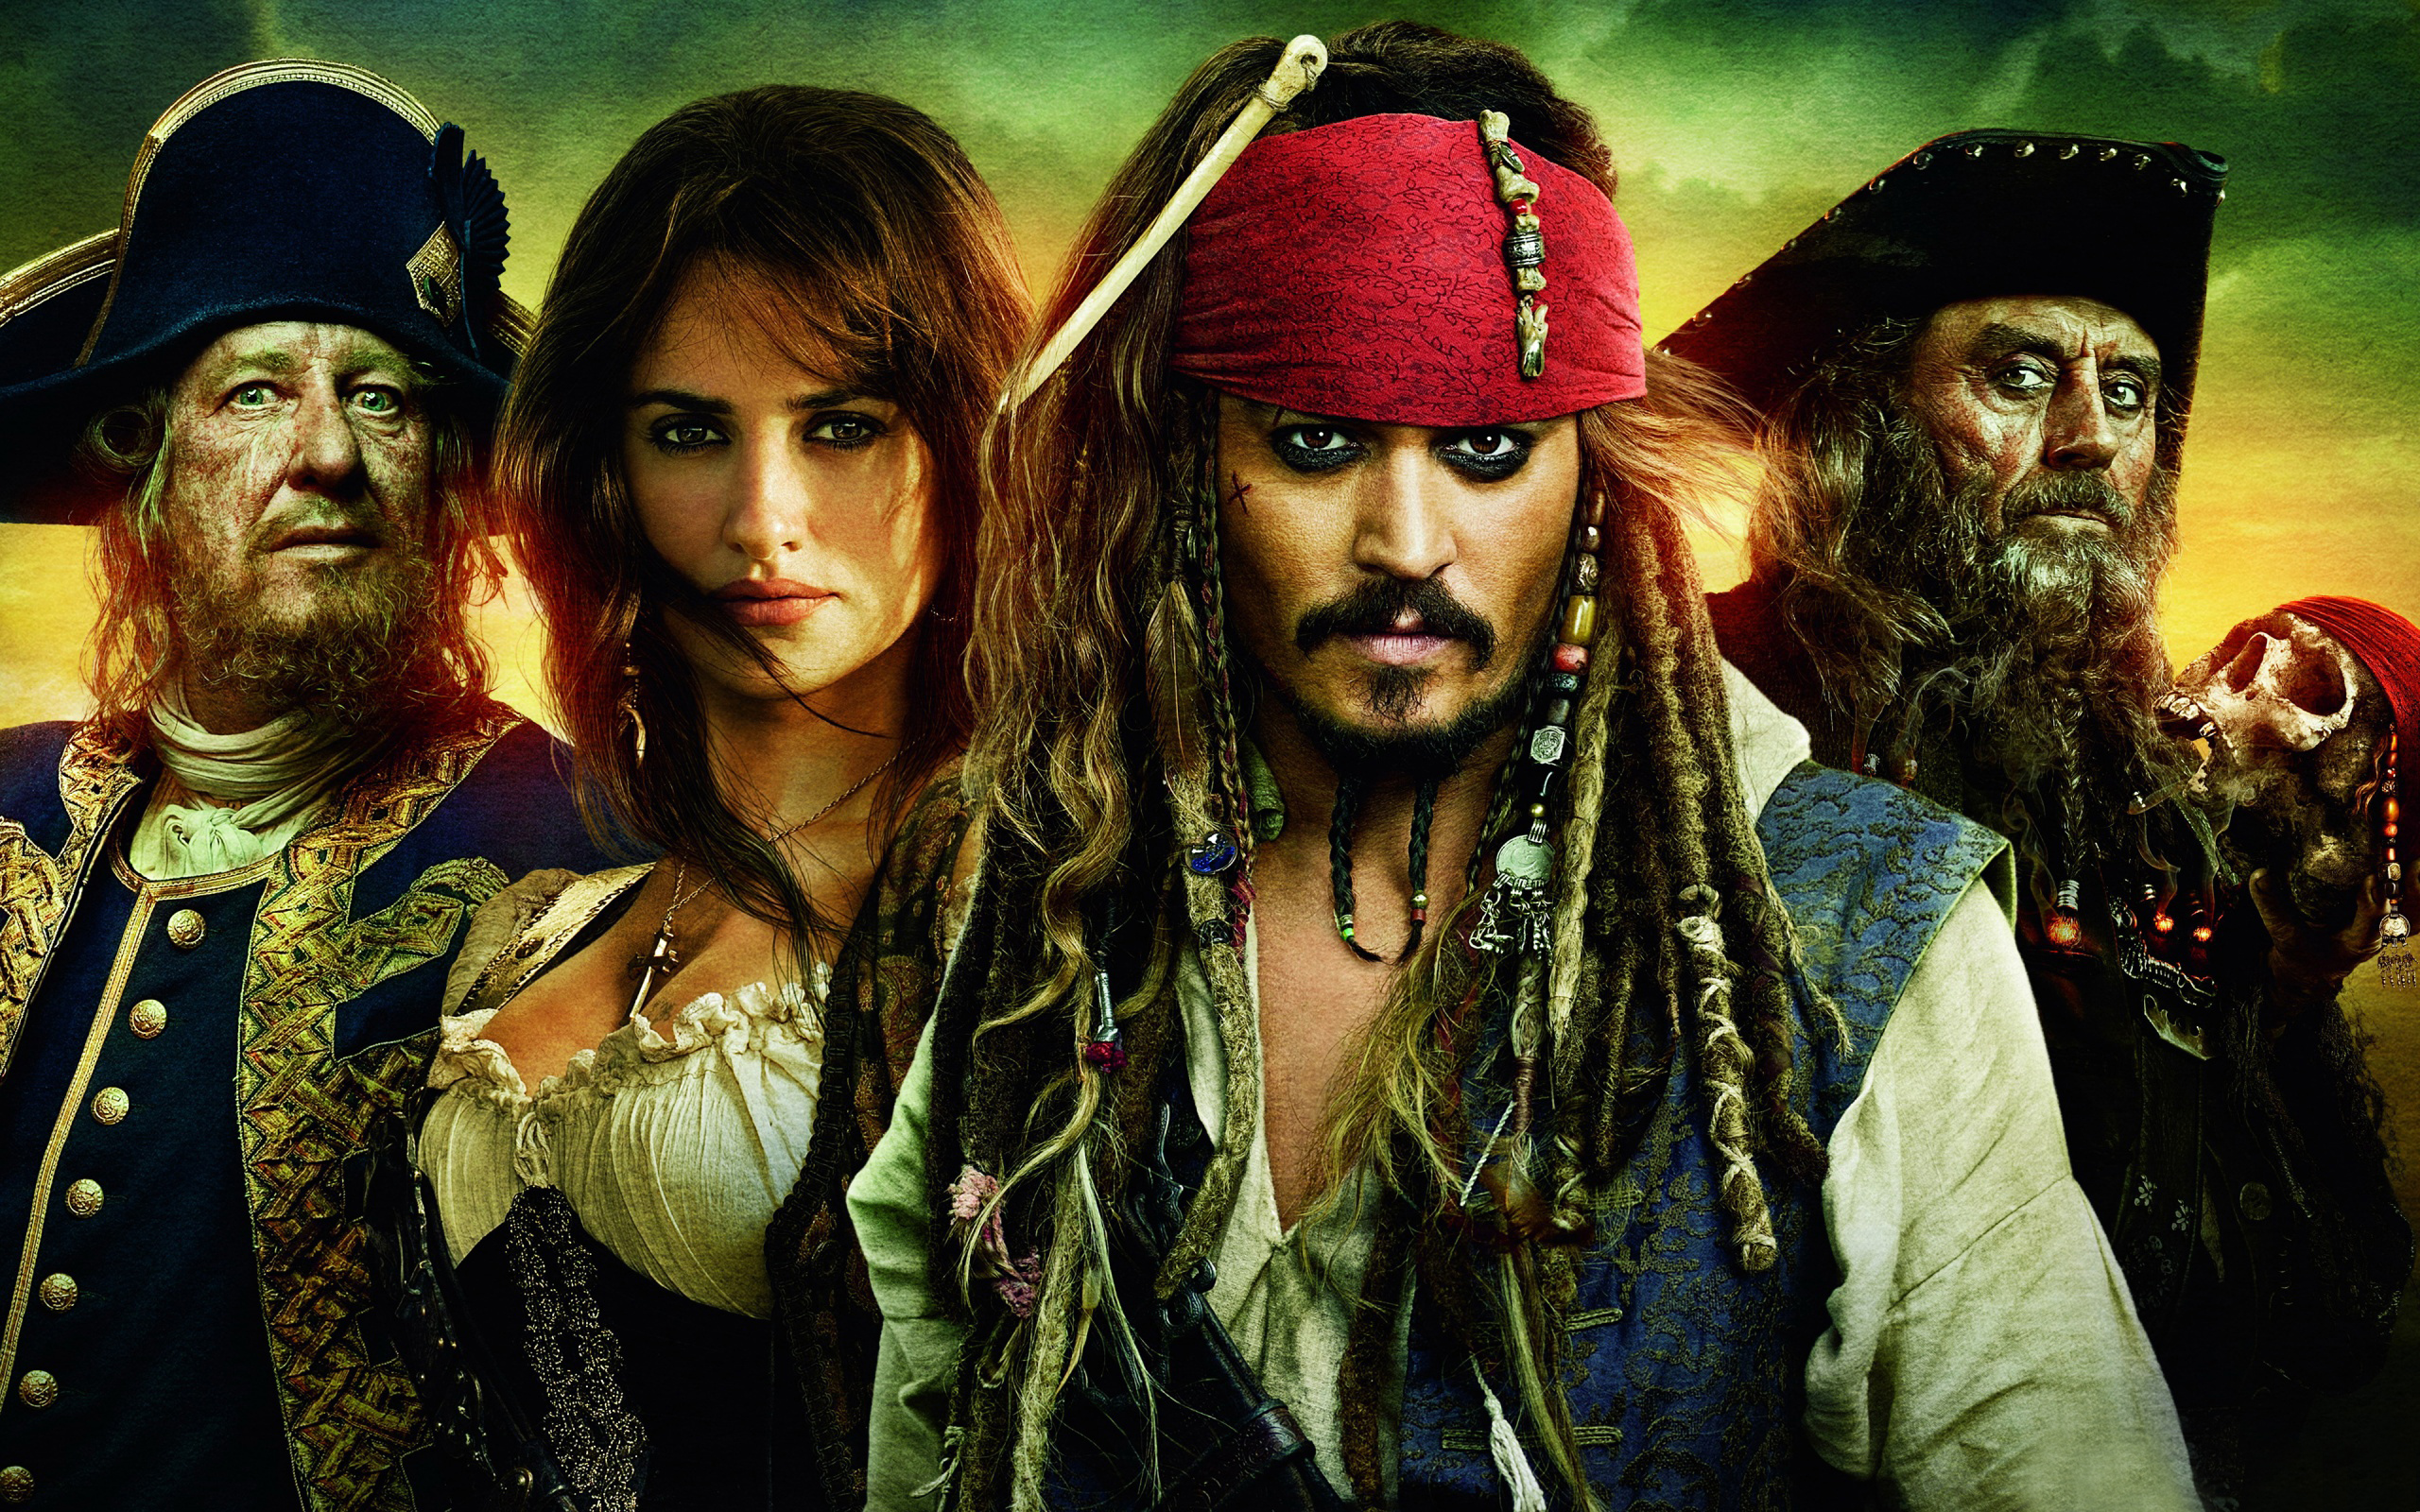 Pirates Of The Caribbean Stranger Tides Wallpapers Wallpapers Hd